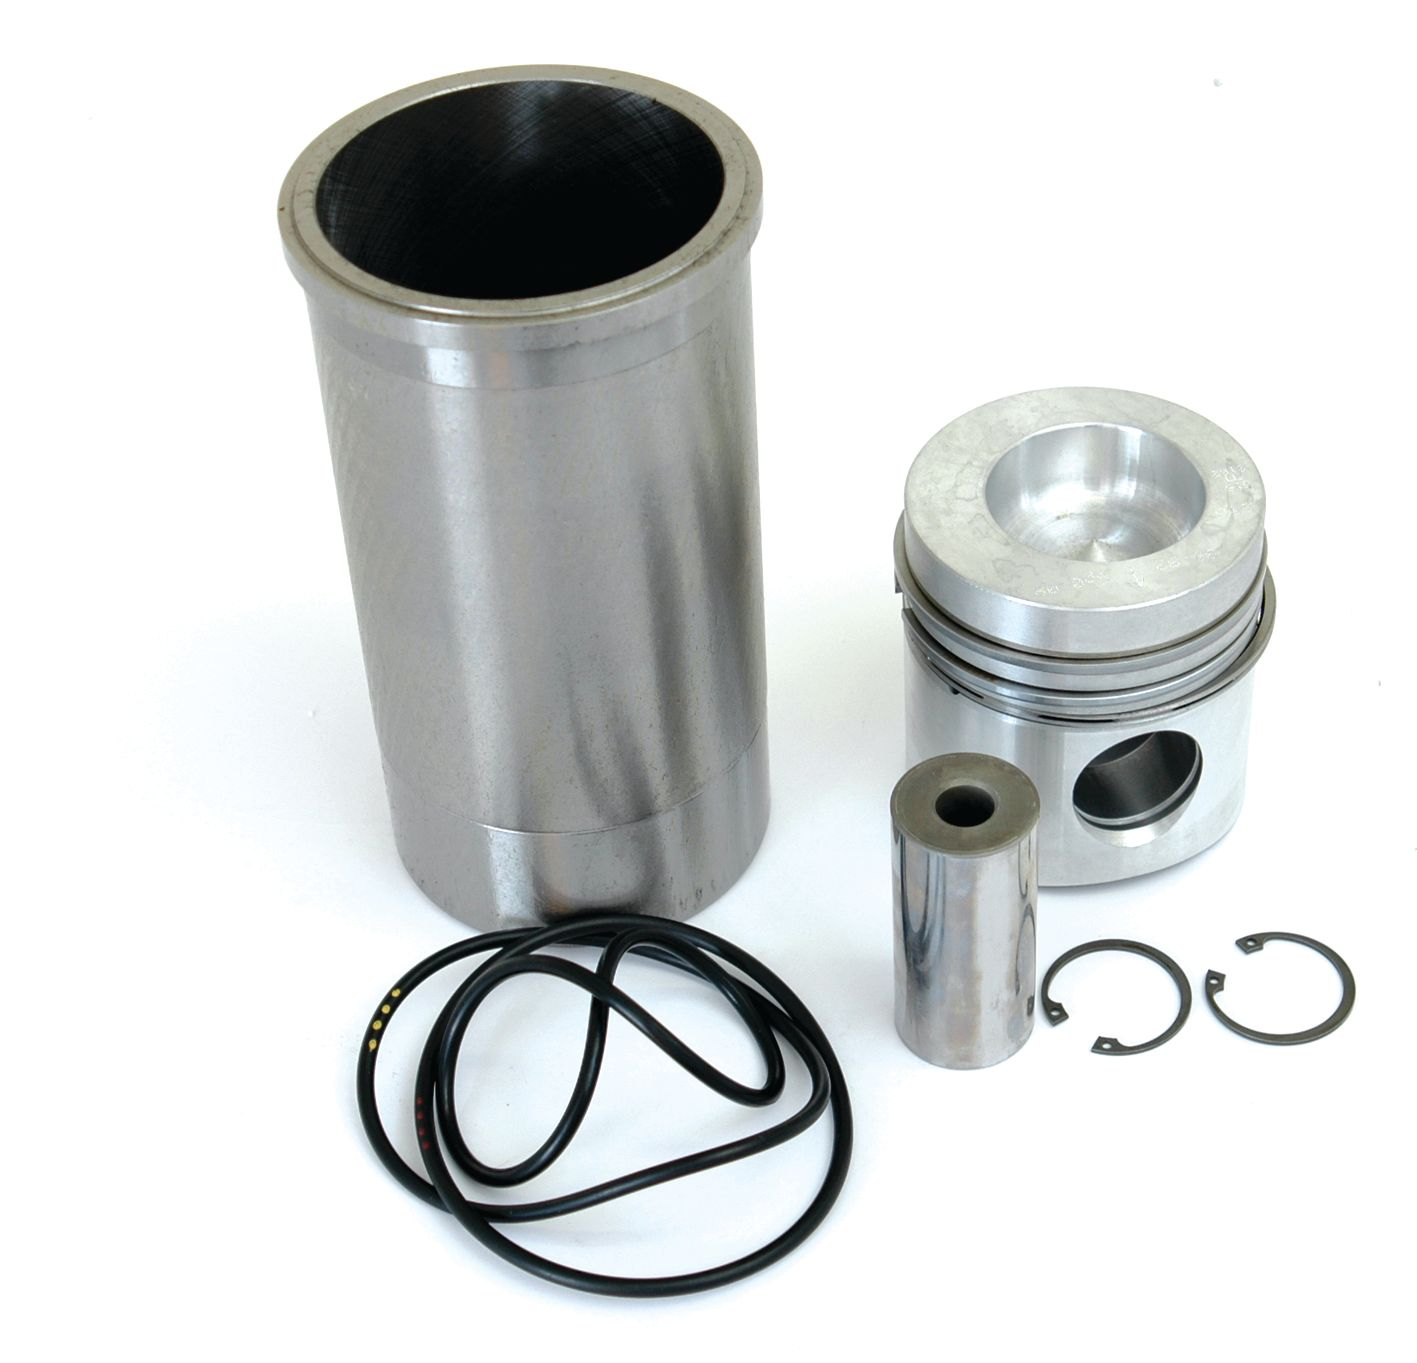 CASE IH PISTON,RING & LINER KIT 37845